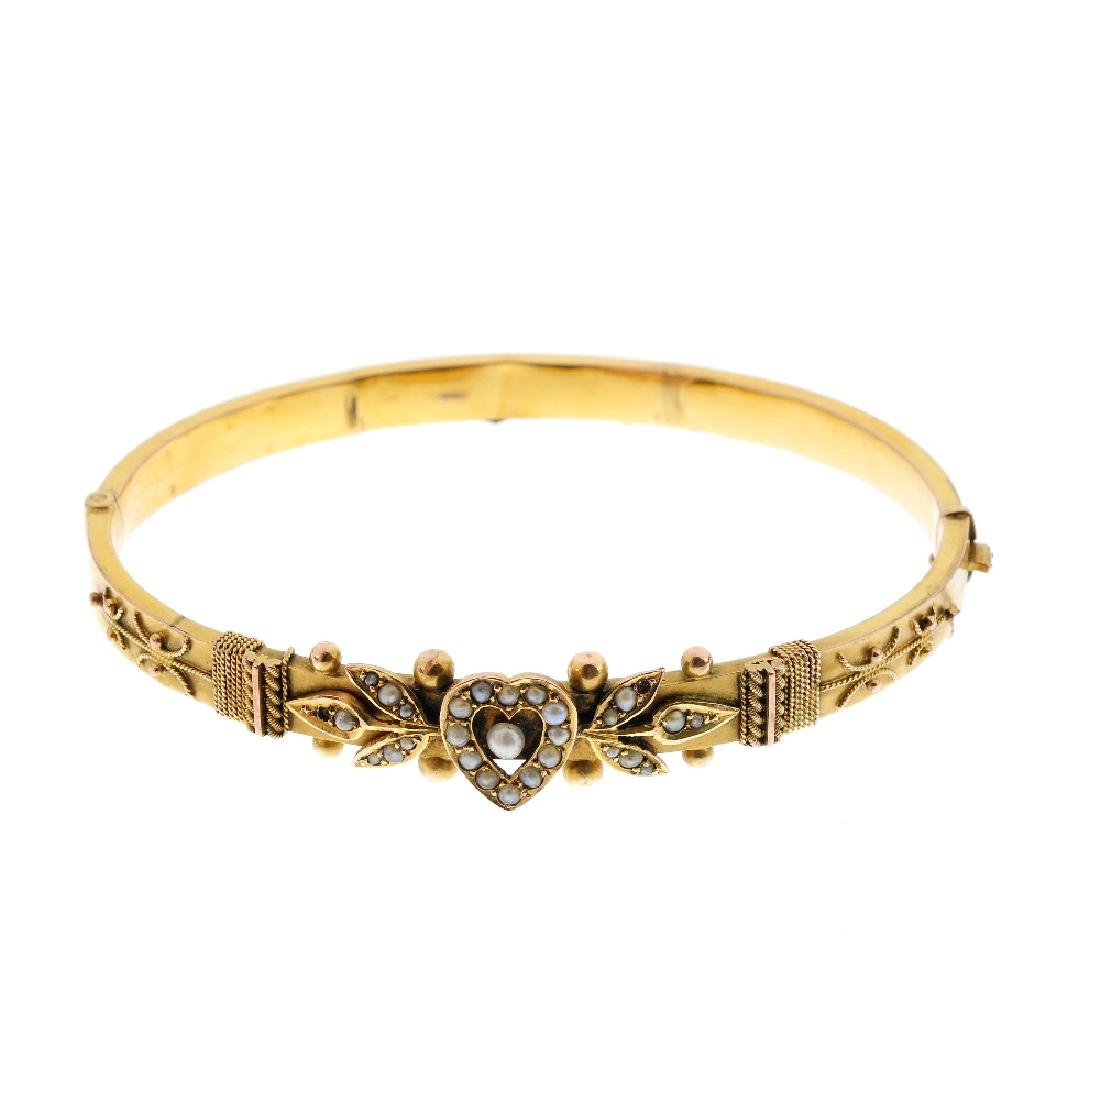 An Edwardian 9ct gold split pearl hinged bangle. The